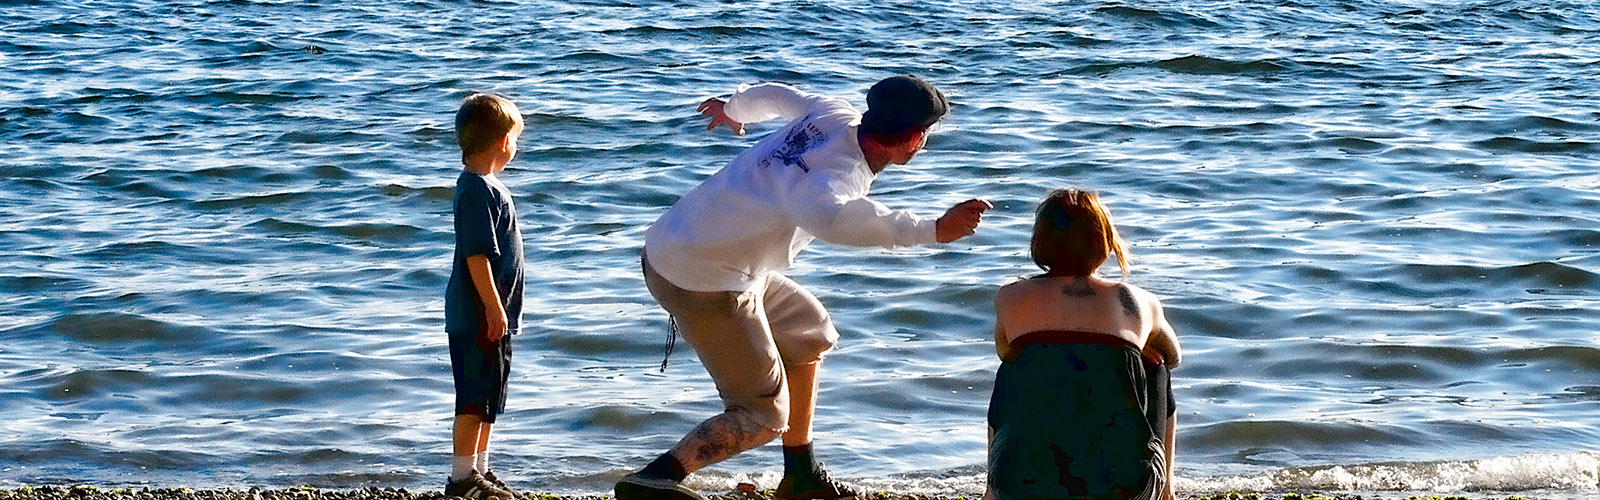 Man skipping a rock across the water with son and wife watching